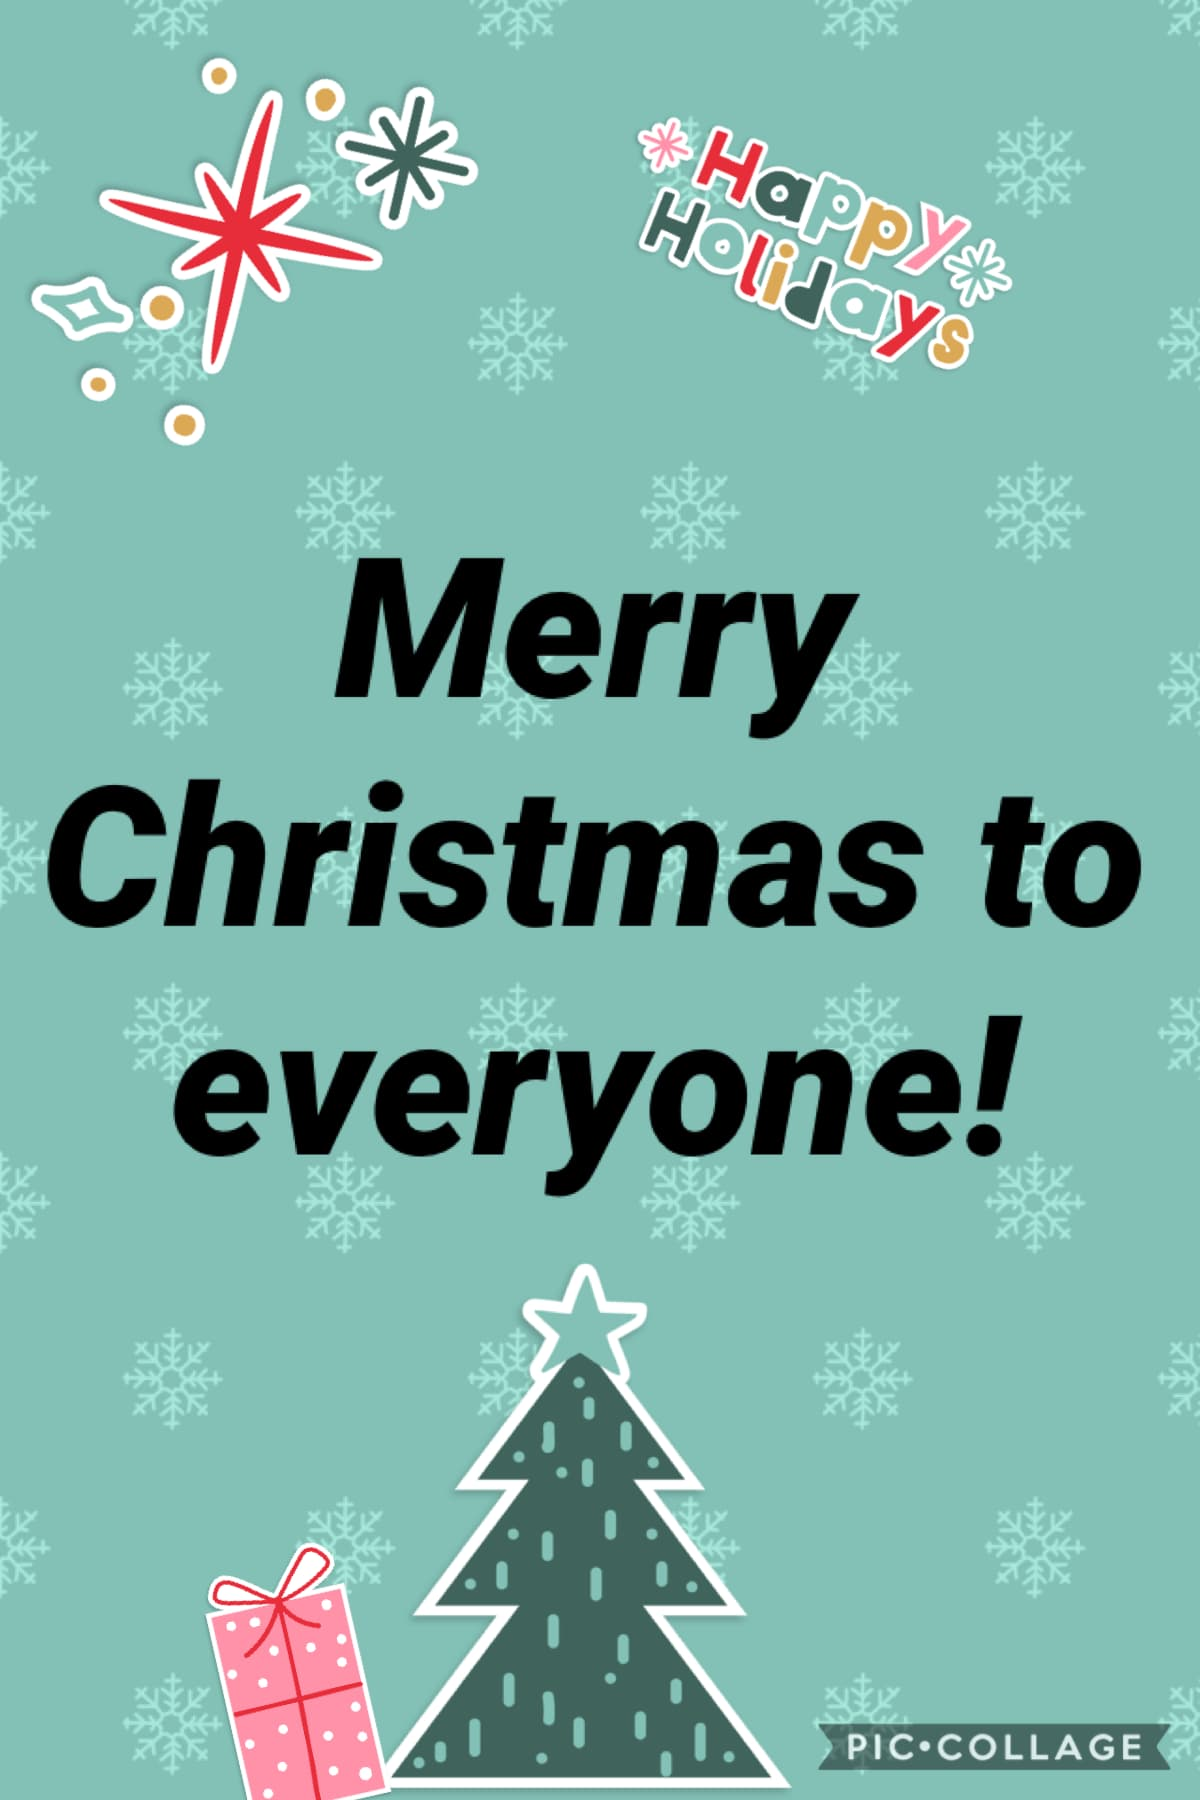 Merry Christmas to everyone! I hope everyone has a wonderful Christmas and truly know what the real meaning of Christmas is! I know everyone can get up in all the presents but don't for get we have Christmas because that is Jesus's birthday! So this Chris